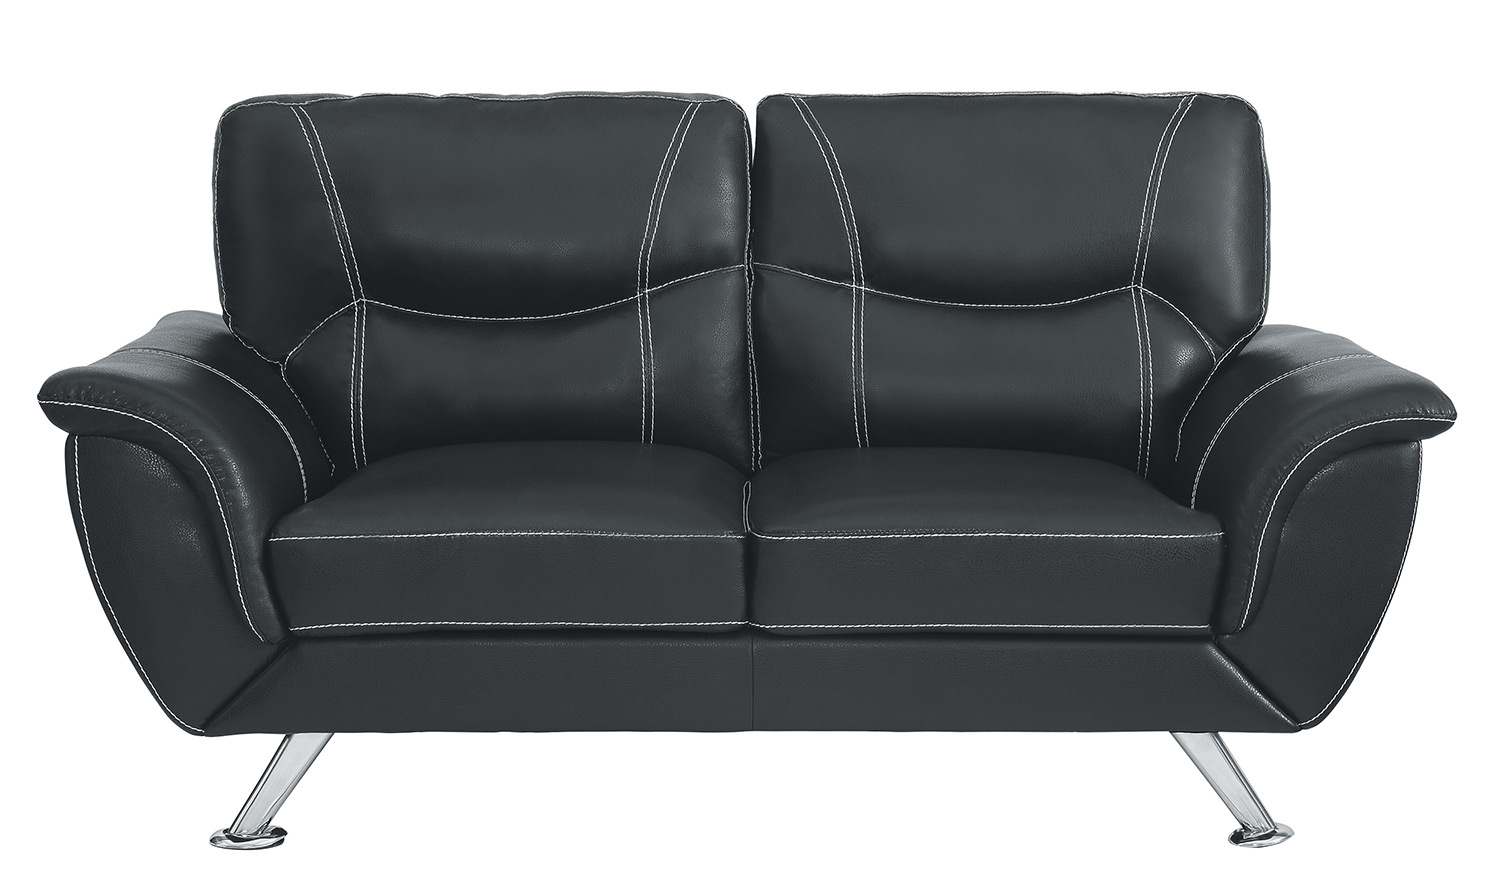 Homelegance Jambul Love Seat - Black